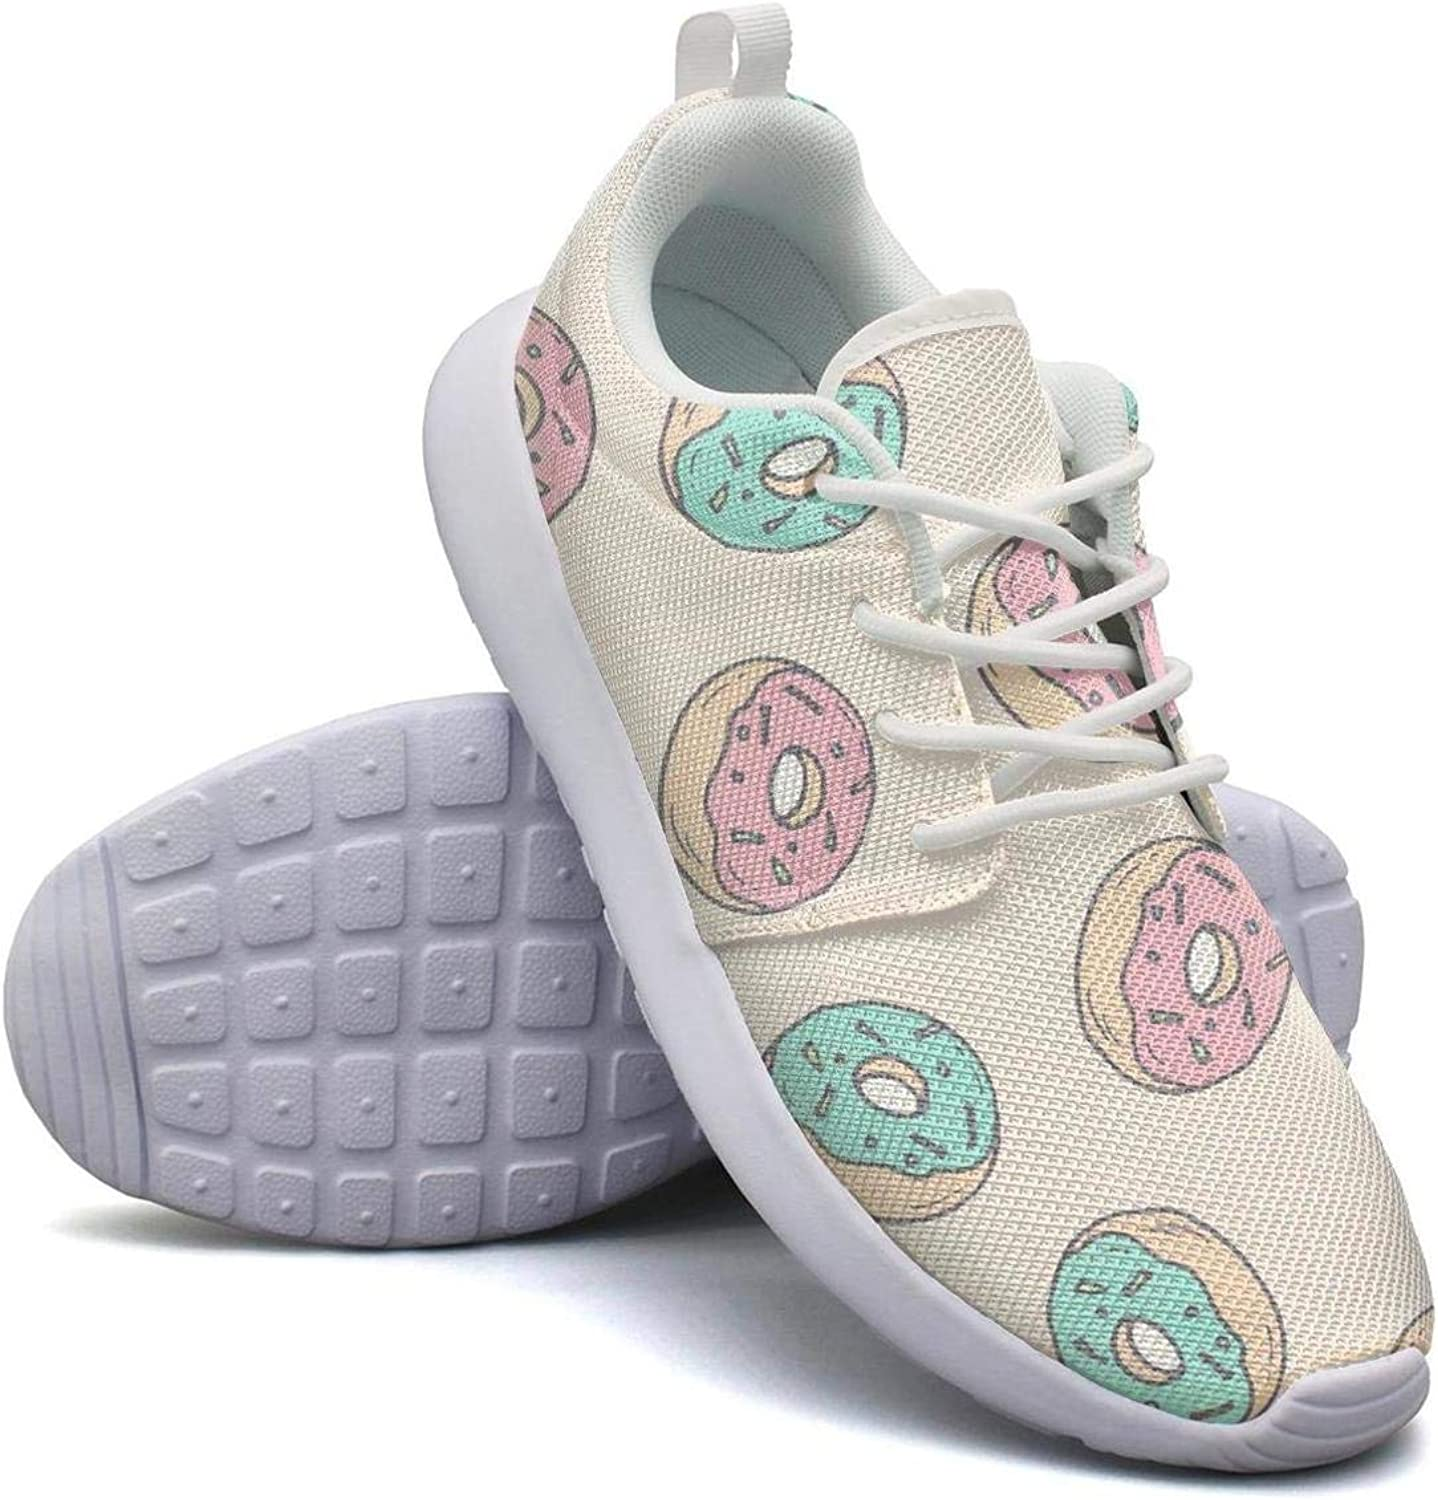 FEWW11 Women Funny Lightweight shoes Sneakers Monster Creep Donut Doodle Breathable Running Lace-Up